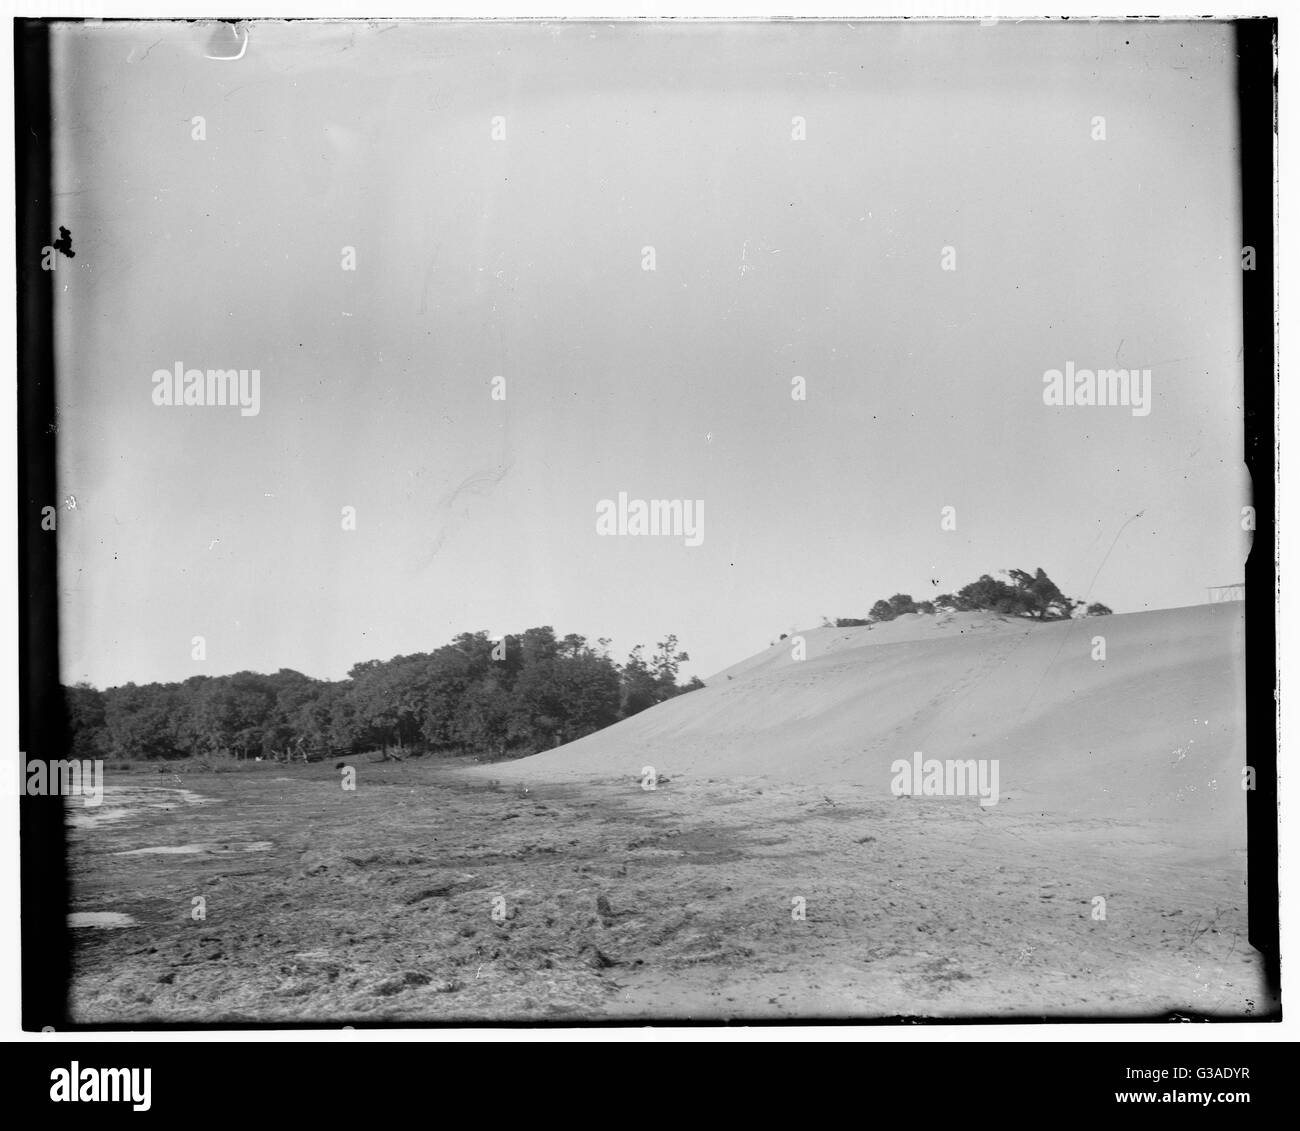 Hill between Kitty Hawk and Kill Devil Hill. Date 1900. - Stock Image